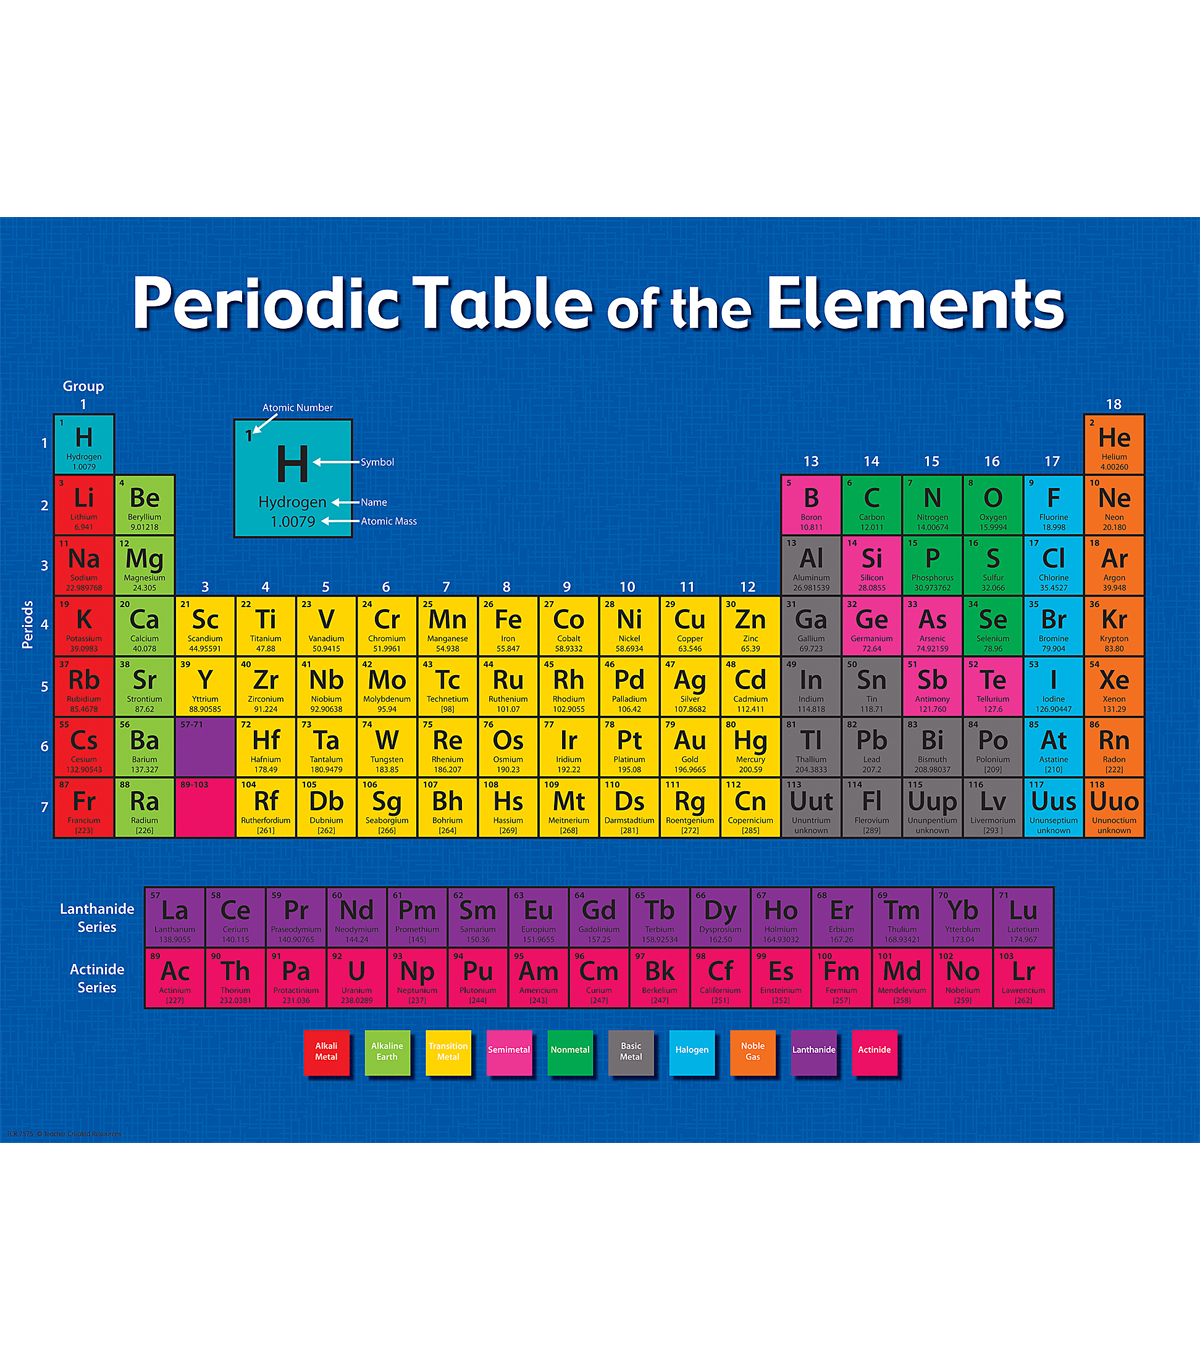 periodic table of elements chart - Periodic Table Of Elements Quilt